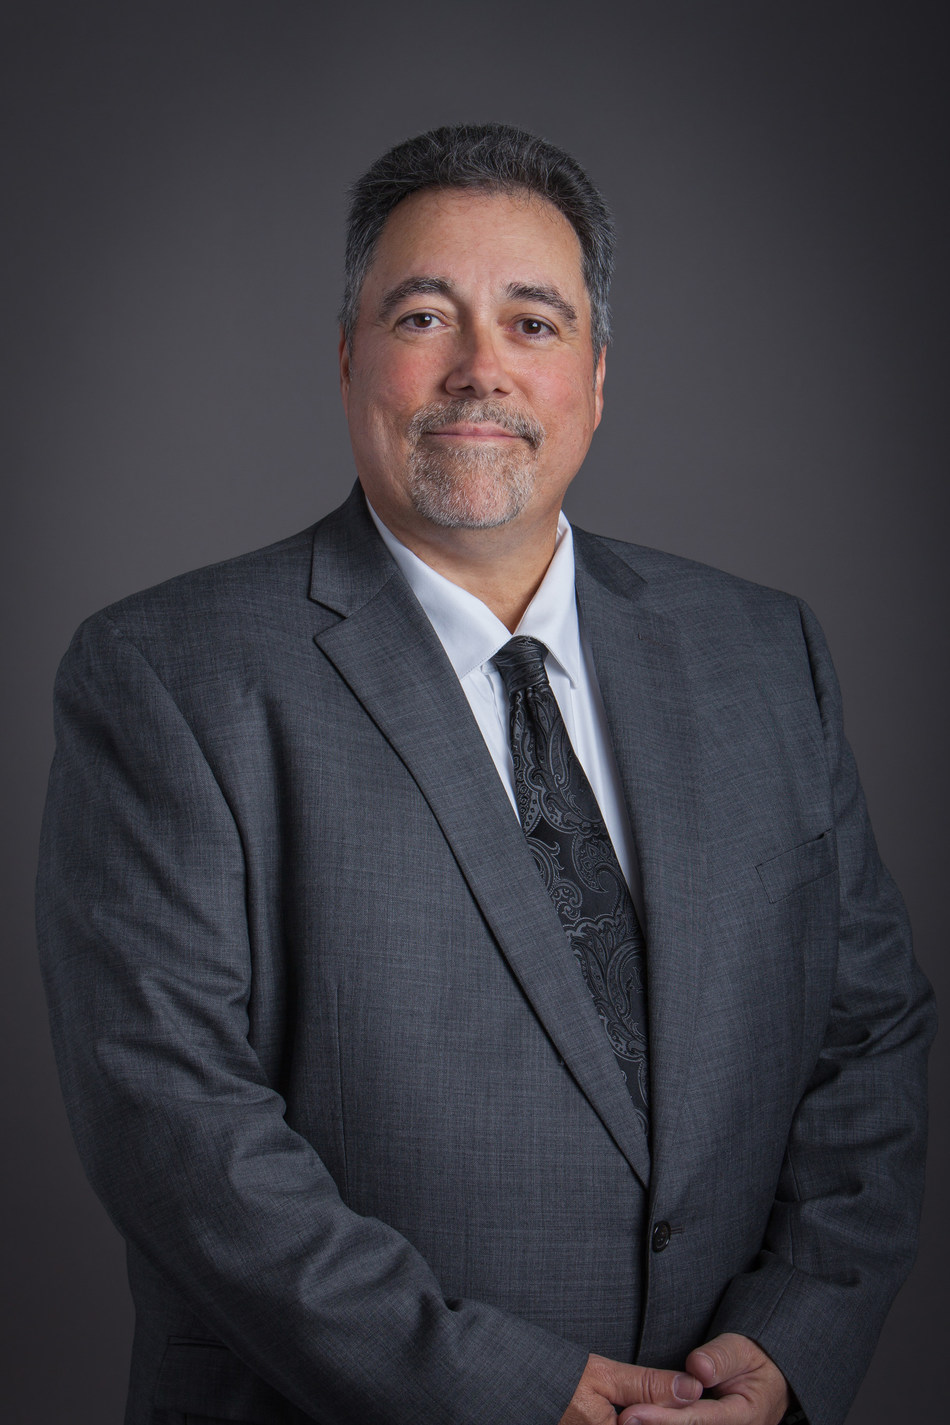 Anthony (Tony) Paresa, PE, joins Burns & McDonnell in the firm's Honolulu office to lead complex and highly technical engineering and construction programs for federal clients.